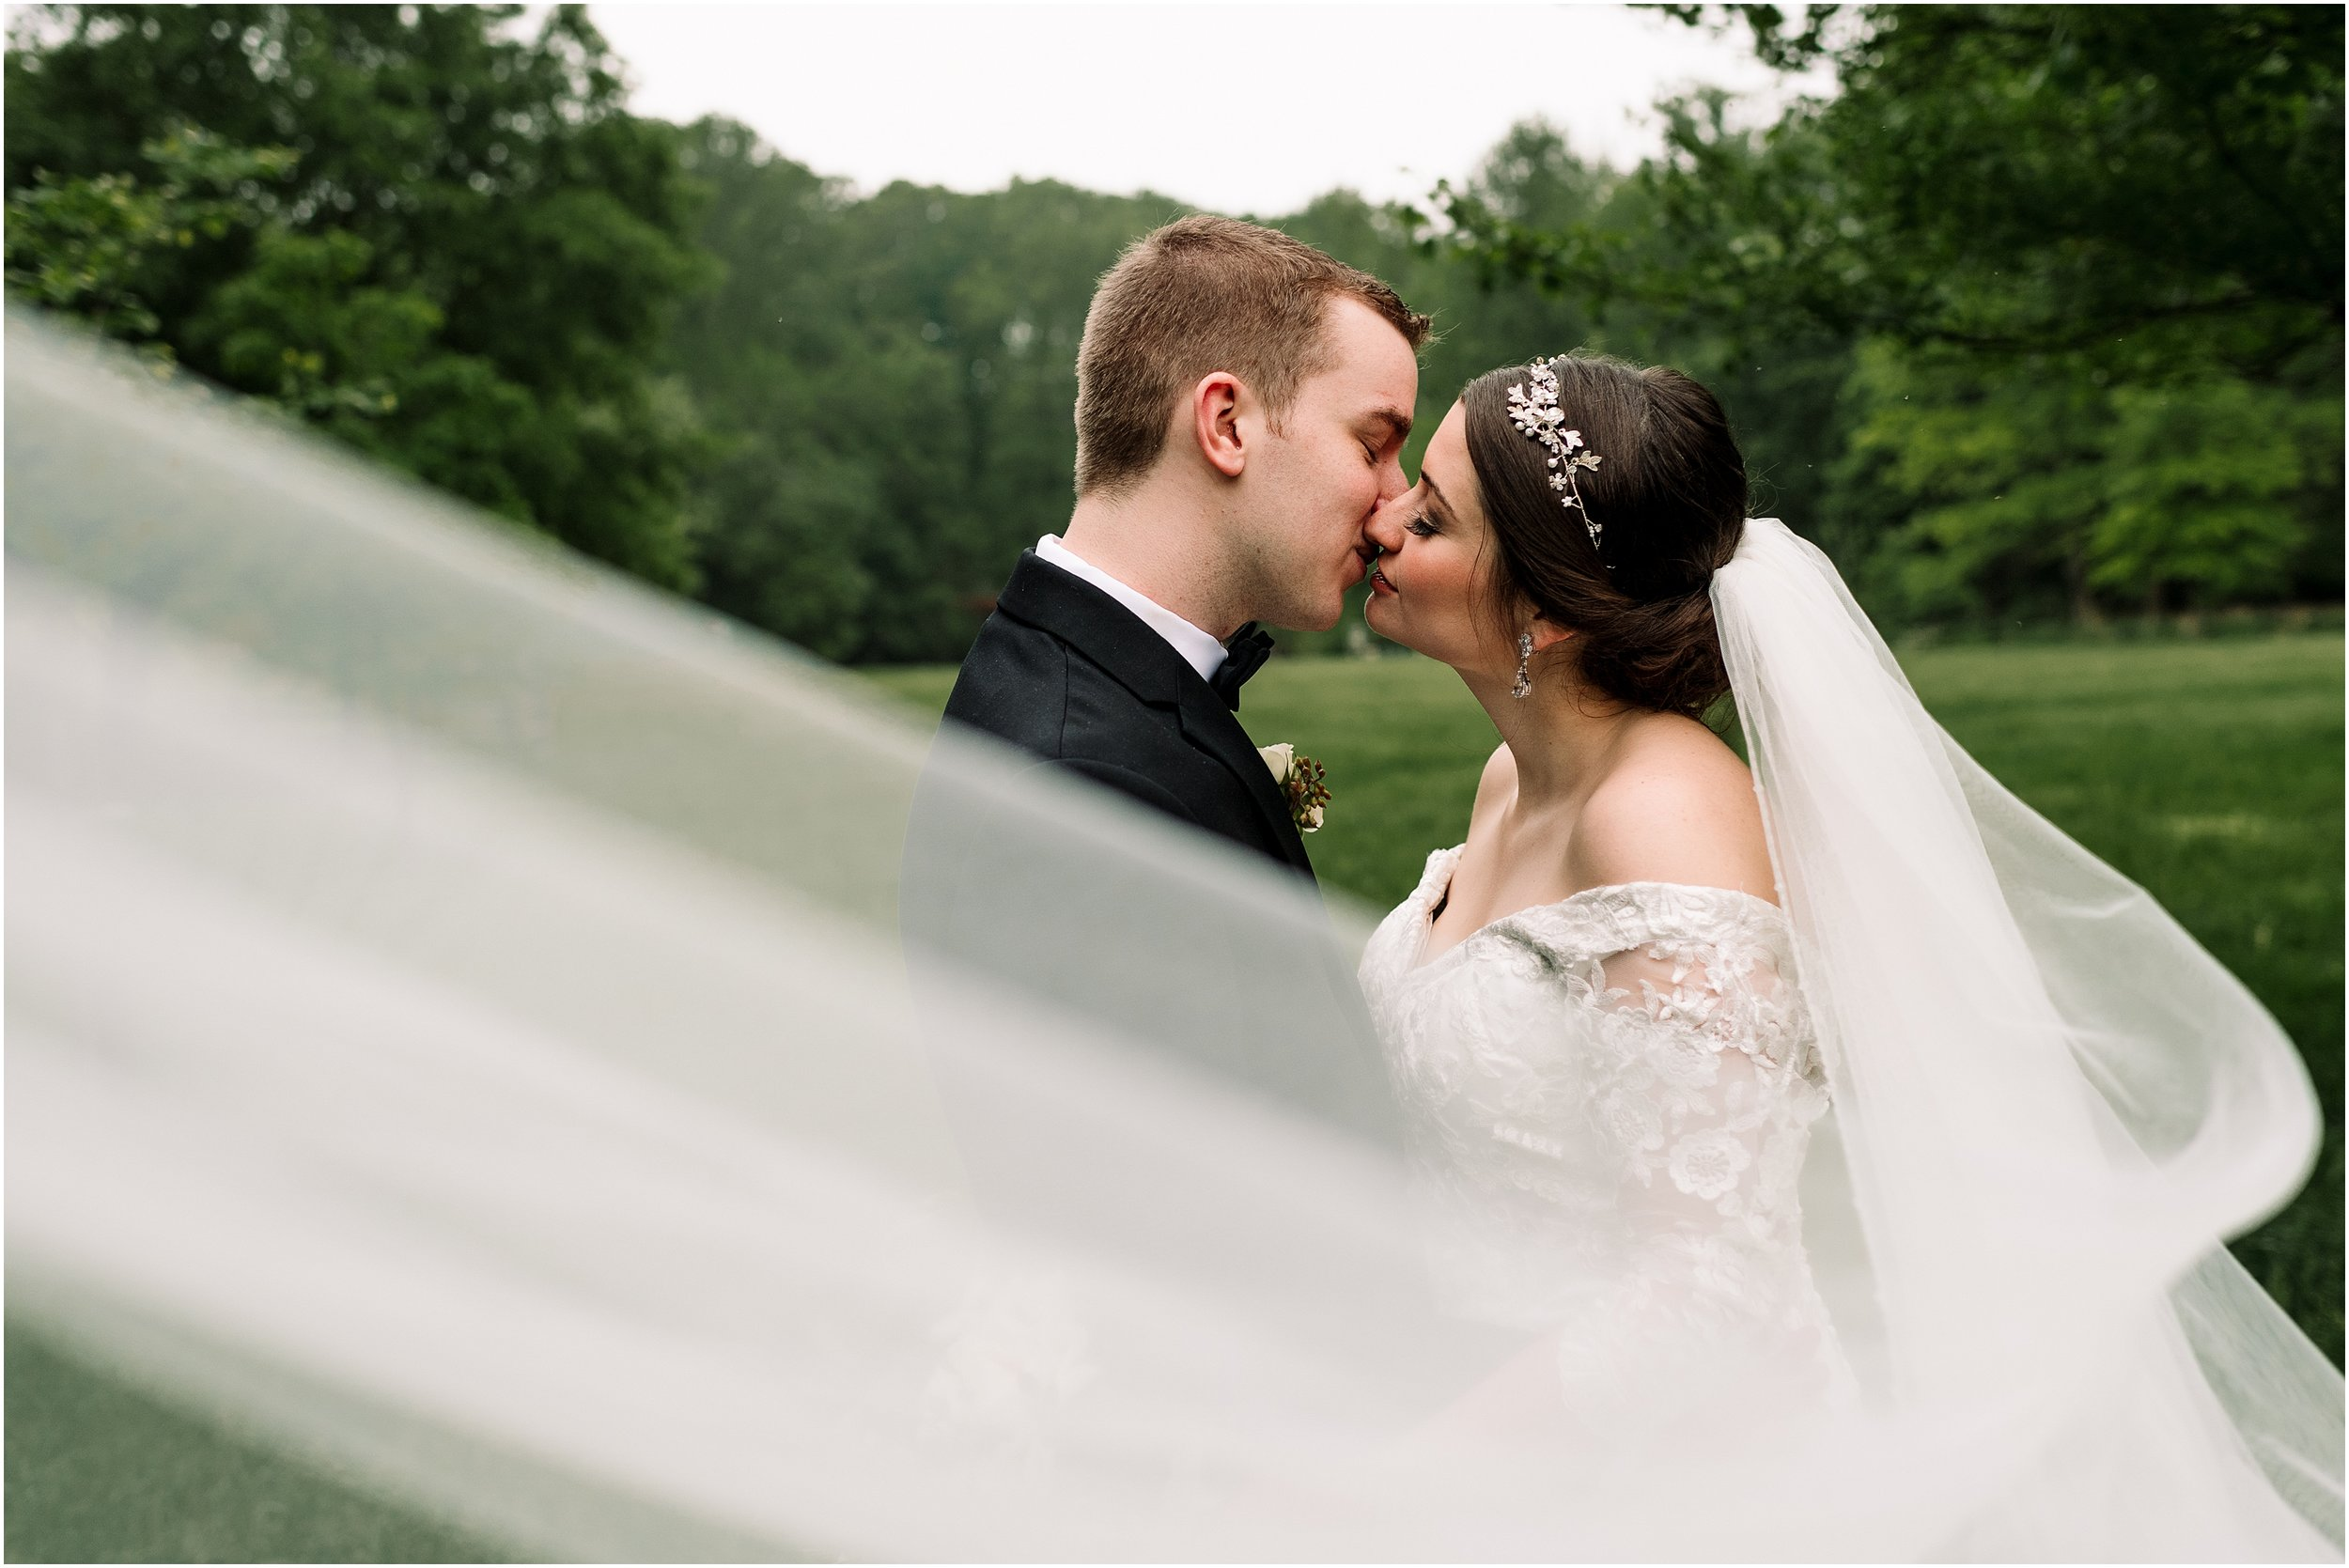 hannah leigh photography weddings_2685.jpg